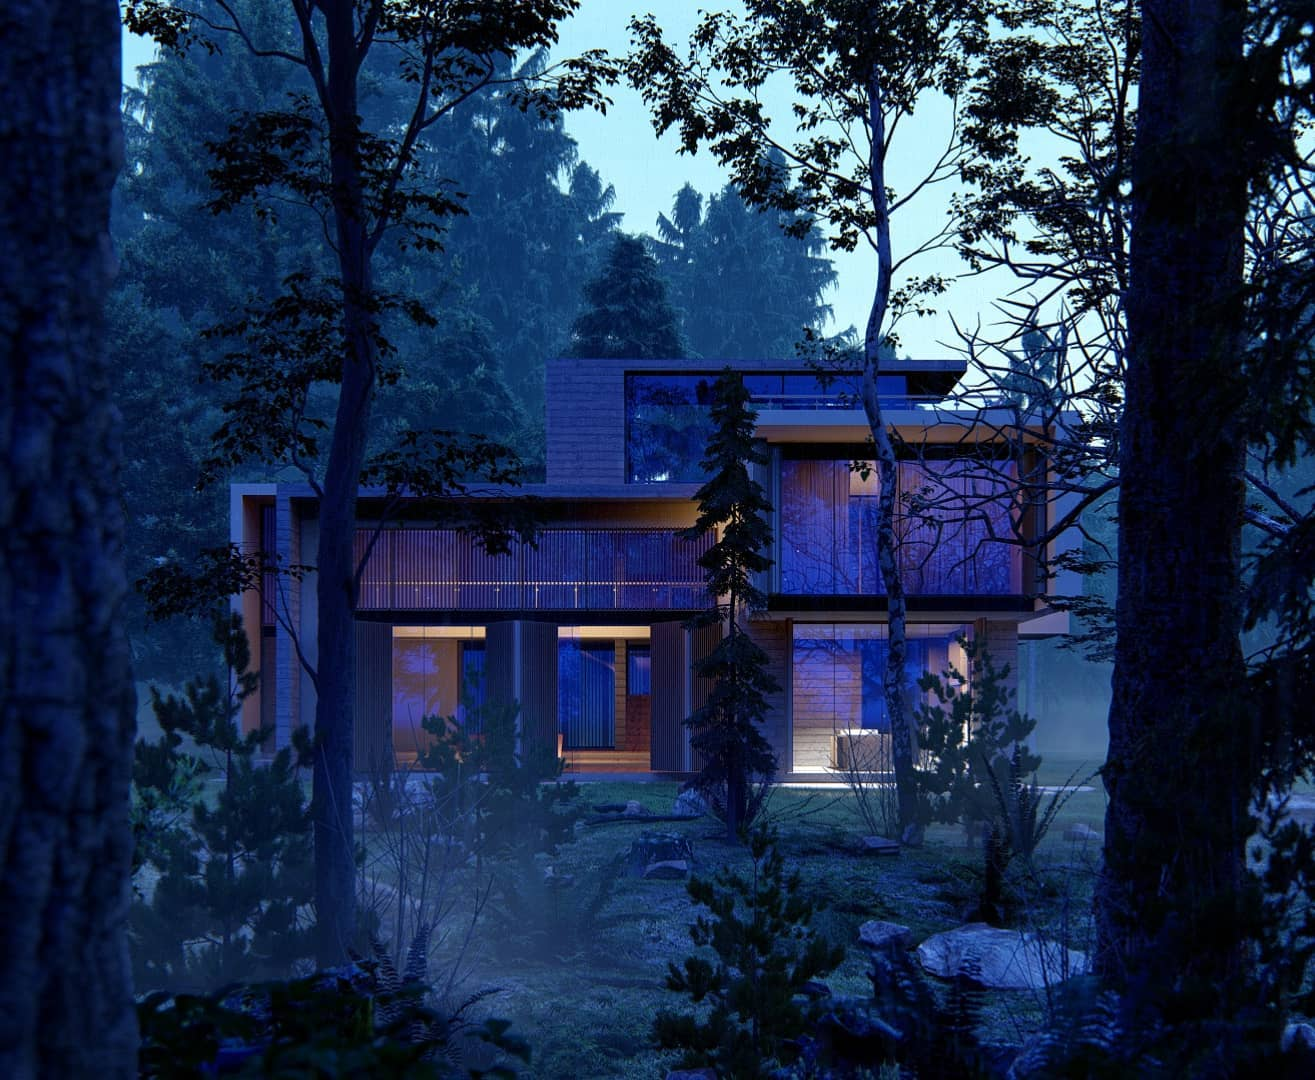 House in the woods (evening lighting), rendered in Lumion 11 by Gui Felix - Lumion Expert .